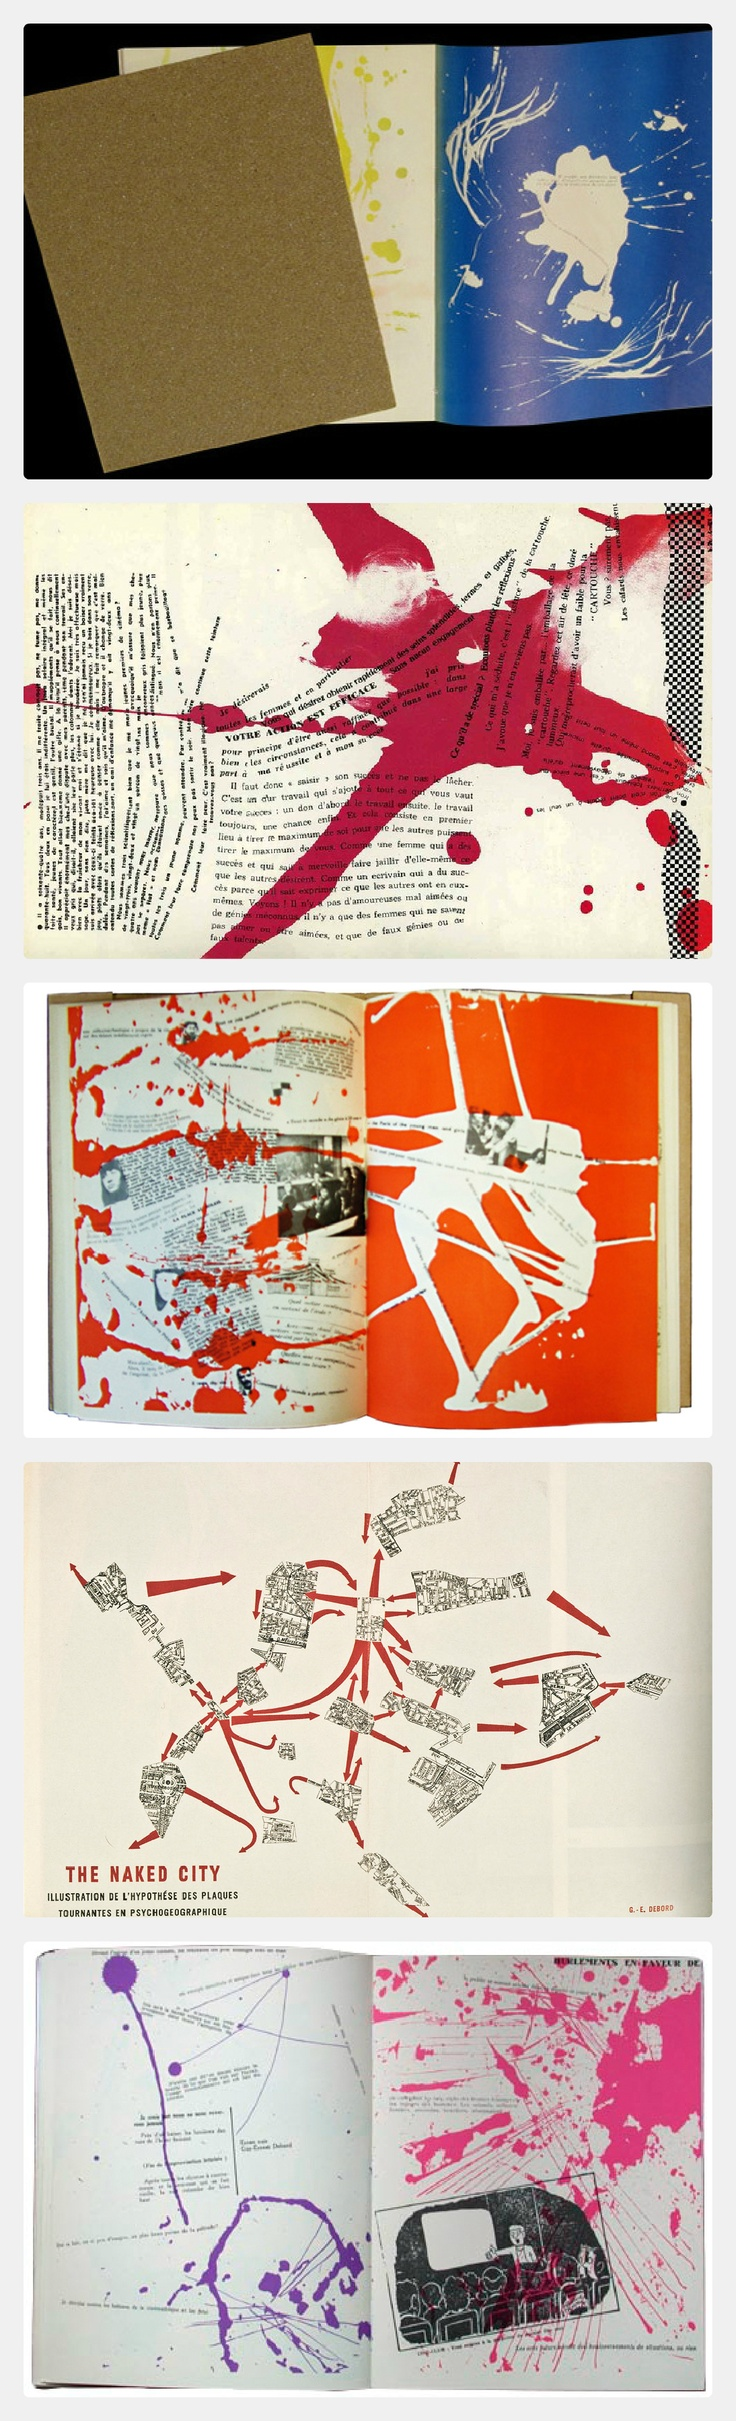 Mémoires (Memories) is an artist's book made by the Danish artist Asger Jorn in collaboration with the French artist and theorist Guy Debord. Printed in 1959, it is the second of two collaborative books by the two men whilst they were both members of the Situationist International.